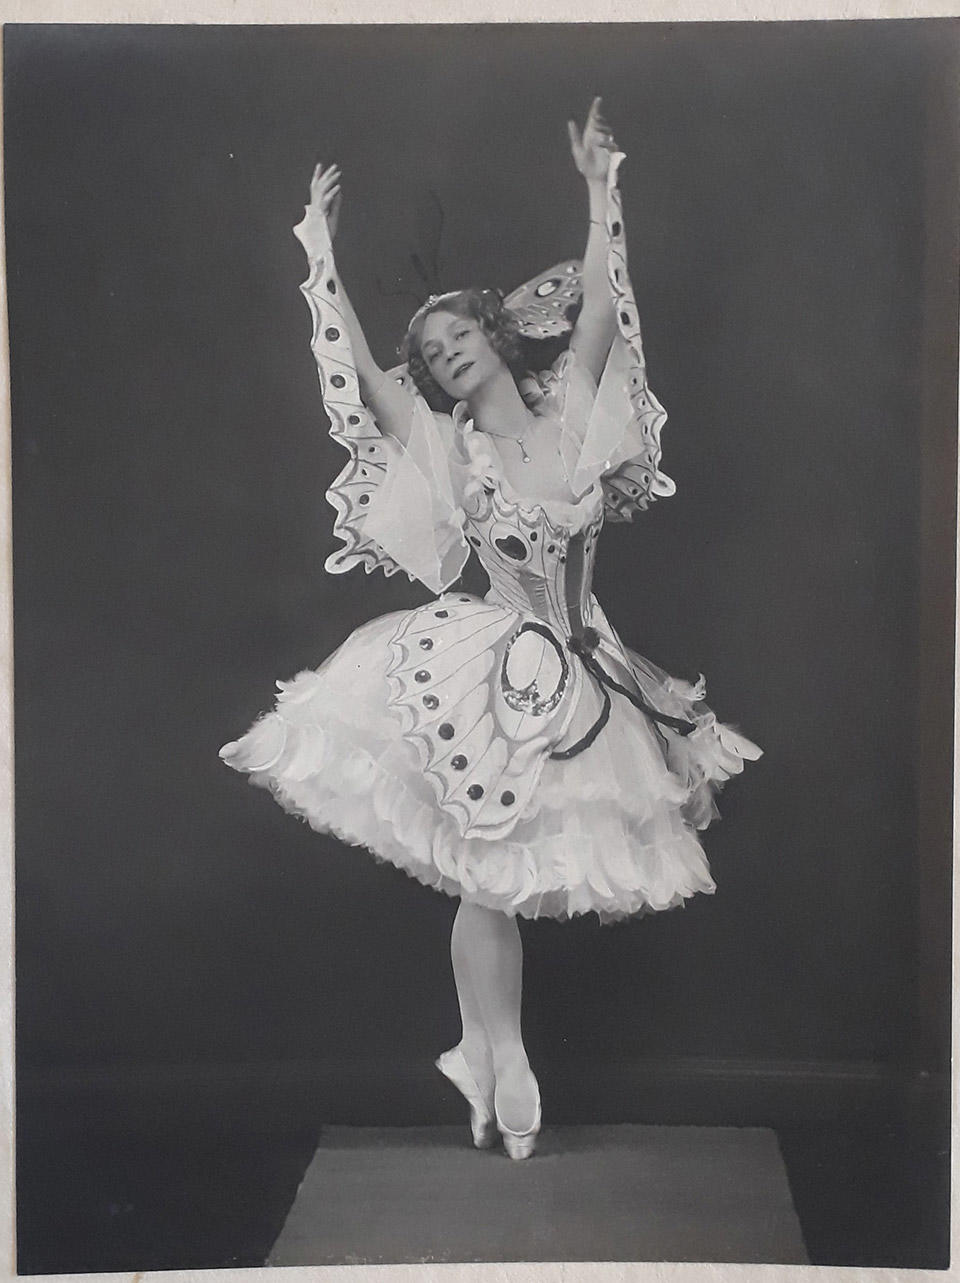 Adeline-Genée-in-_A-Dream-of-Roses-and-Butterflies_.-Photo-by-Hugh-Cecil.jpg